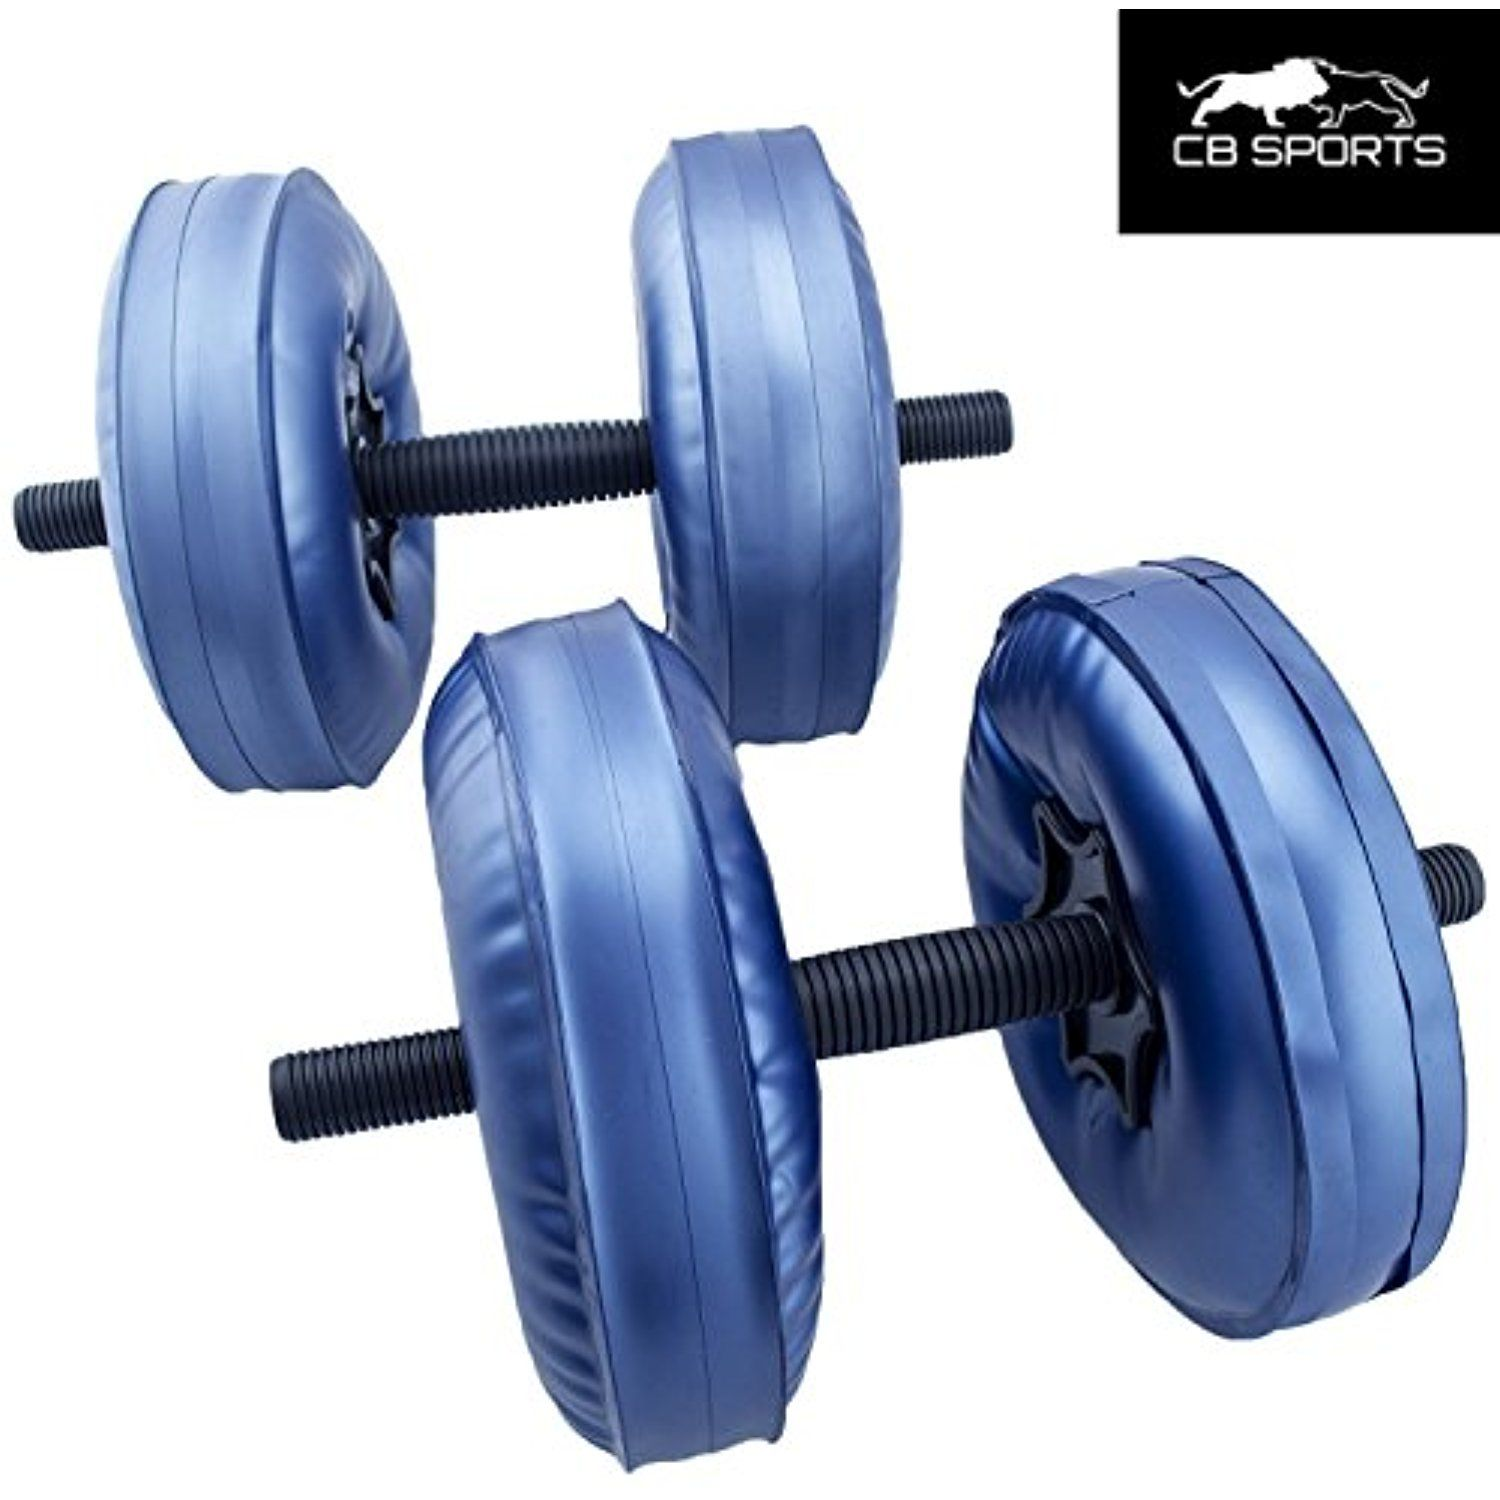 2017 New Cb Sports Deluxe Travel Dumbbells Medium Weight Upto 22lb 10kg Gym And Home Workout Equipment No Equipment Workout Home Workout Equipment Gym Body